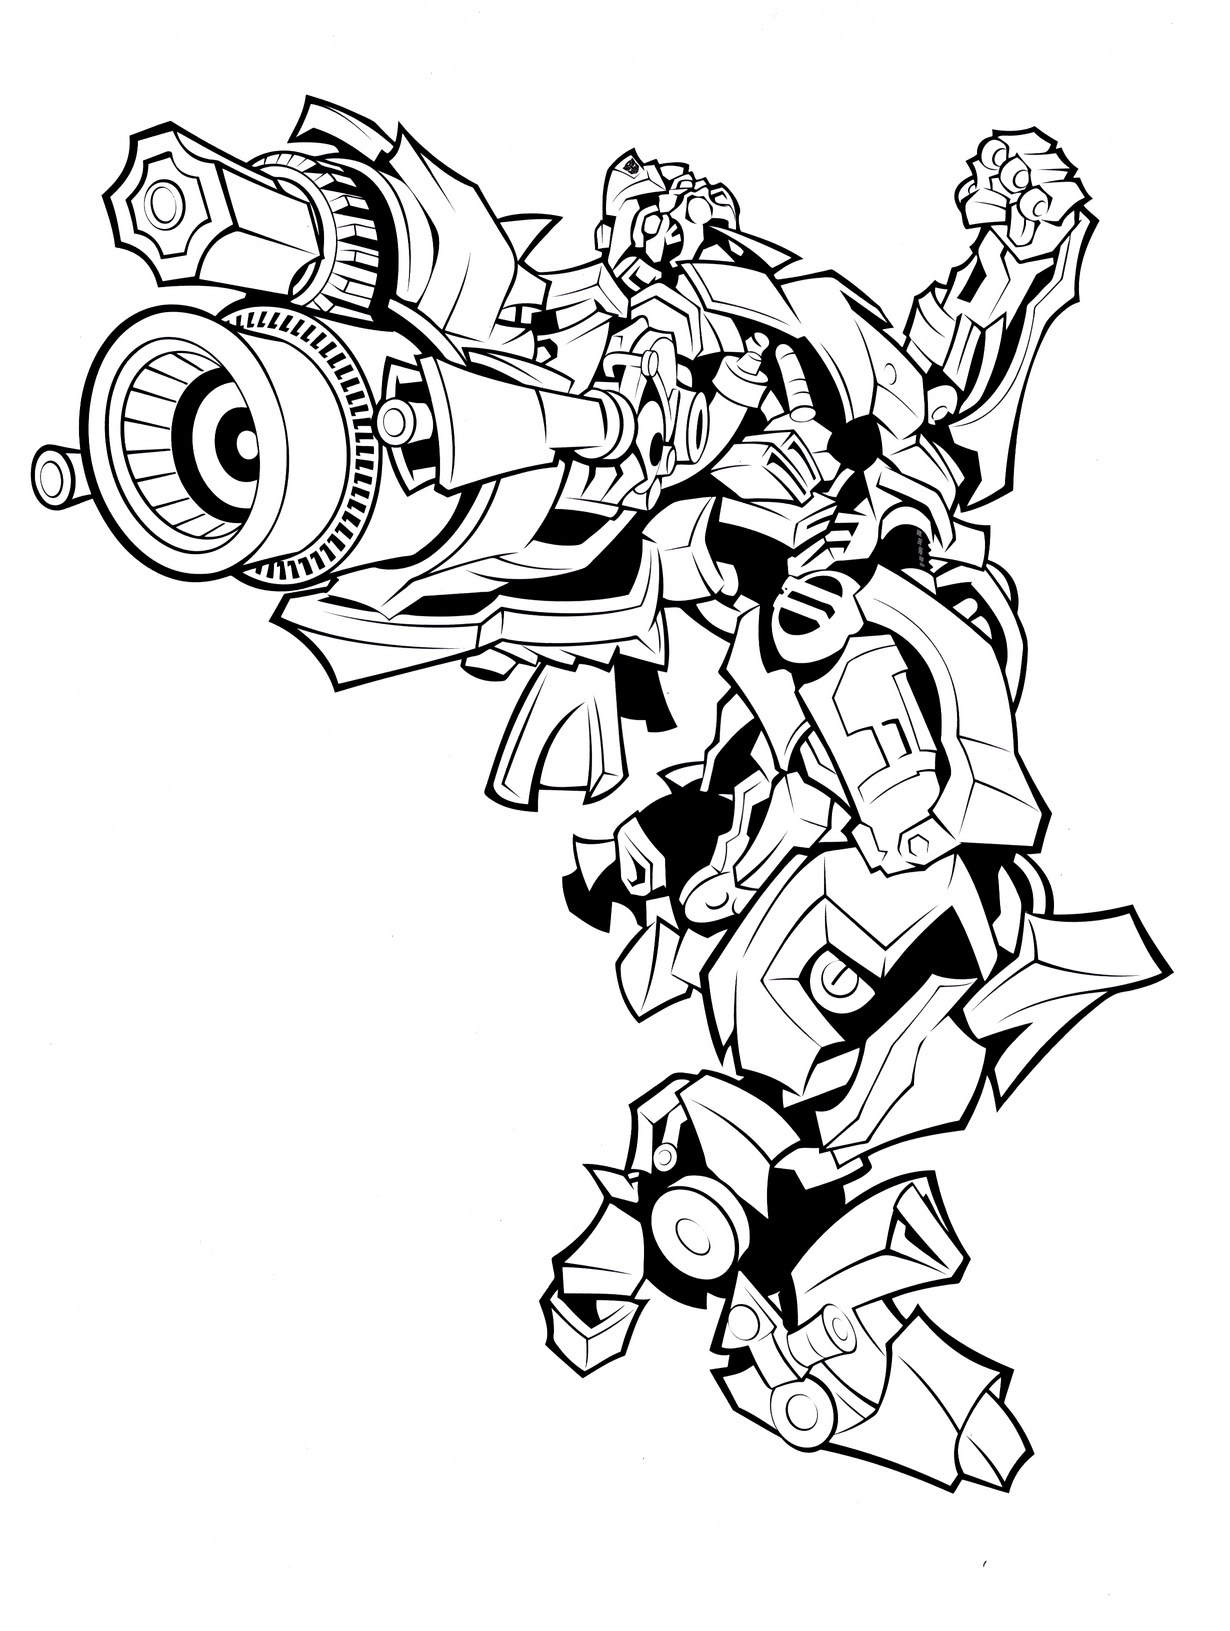 transformers bumblebee coloring pages transformers bumblebee coloring page new coloring pages bumblebee pages coloring transformers